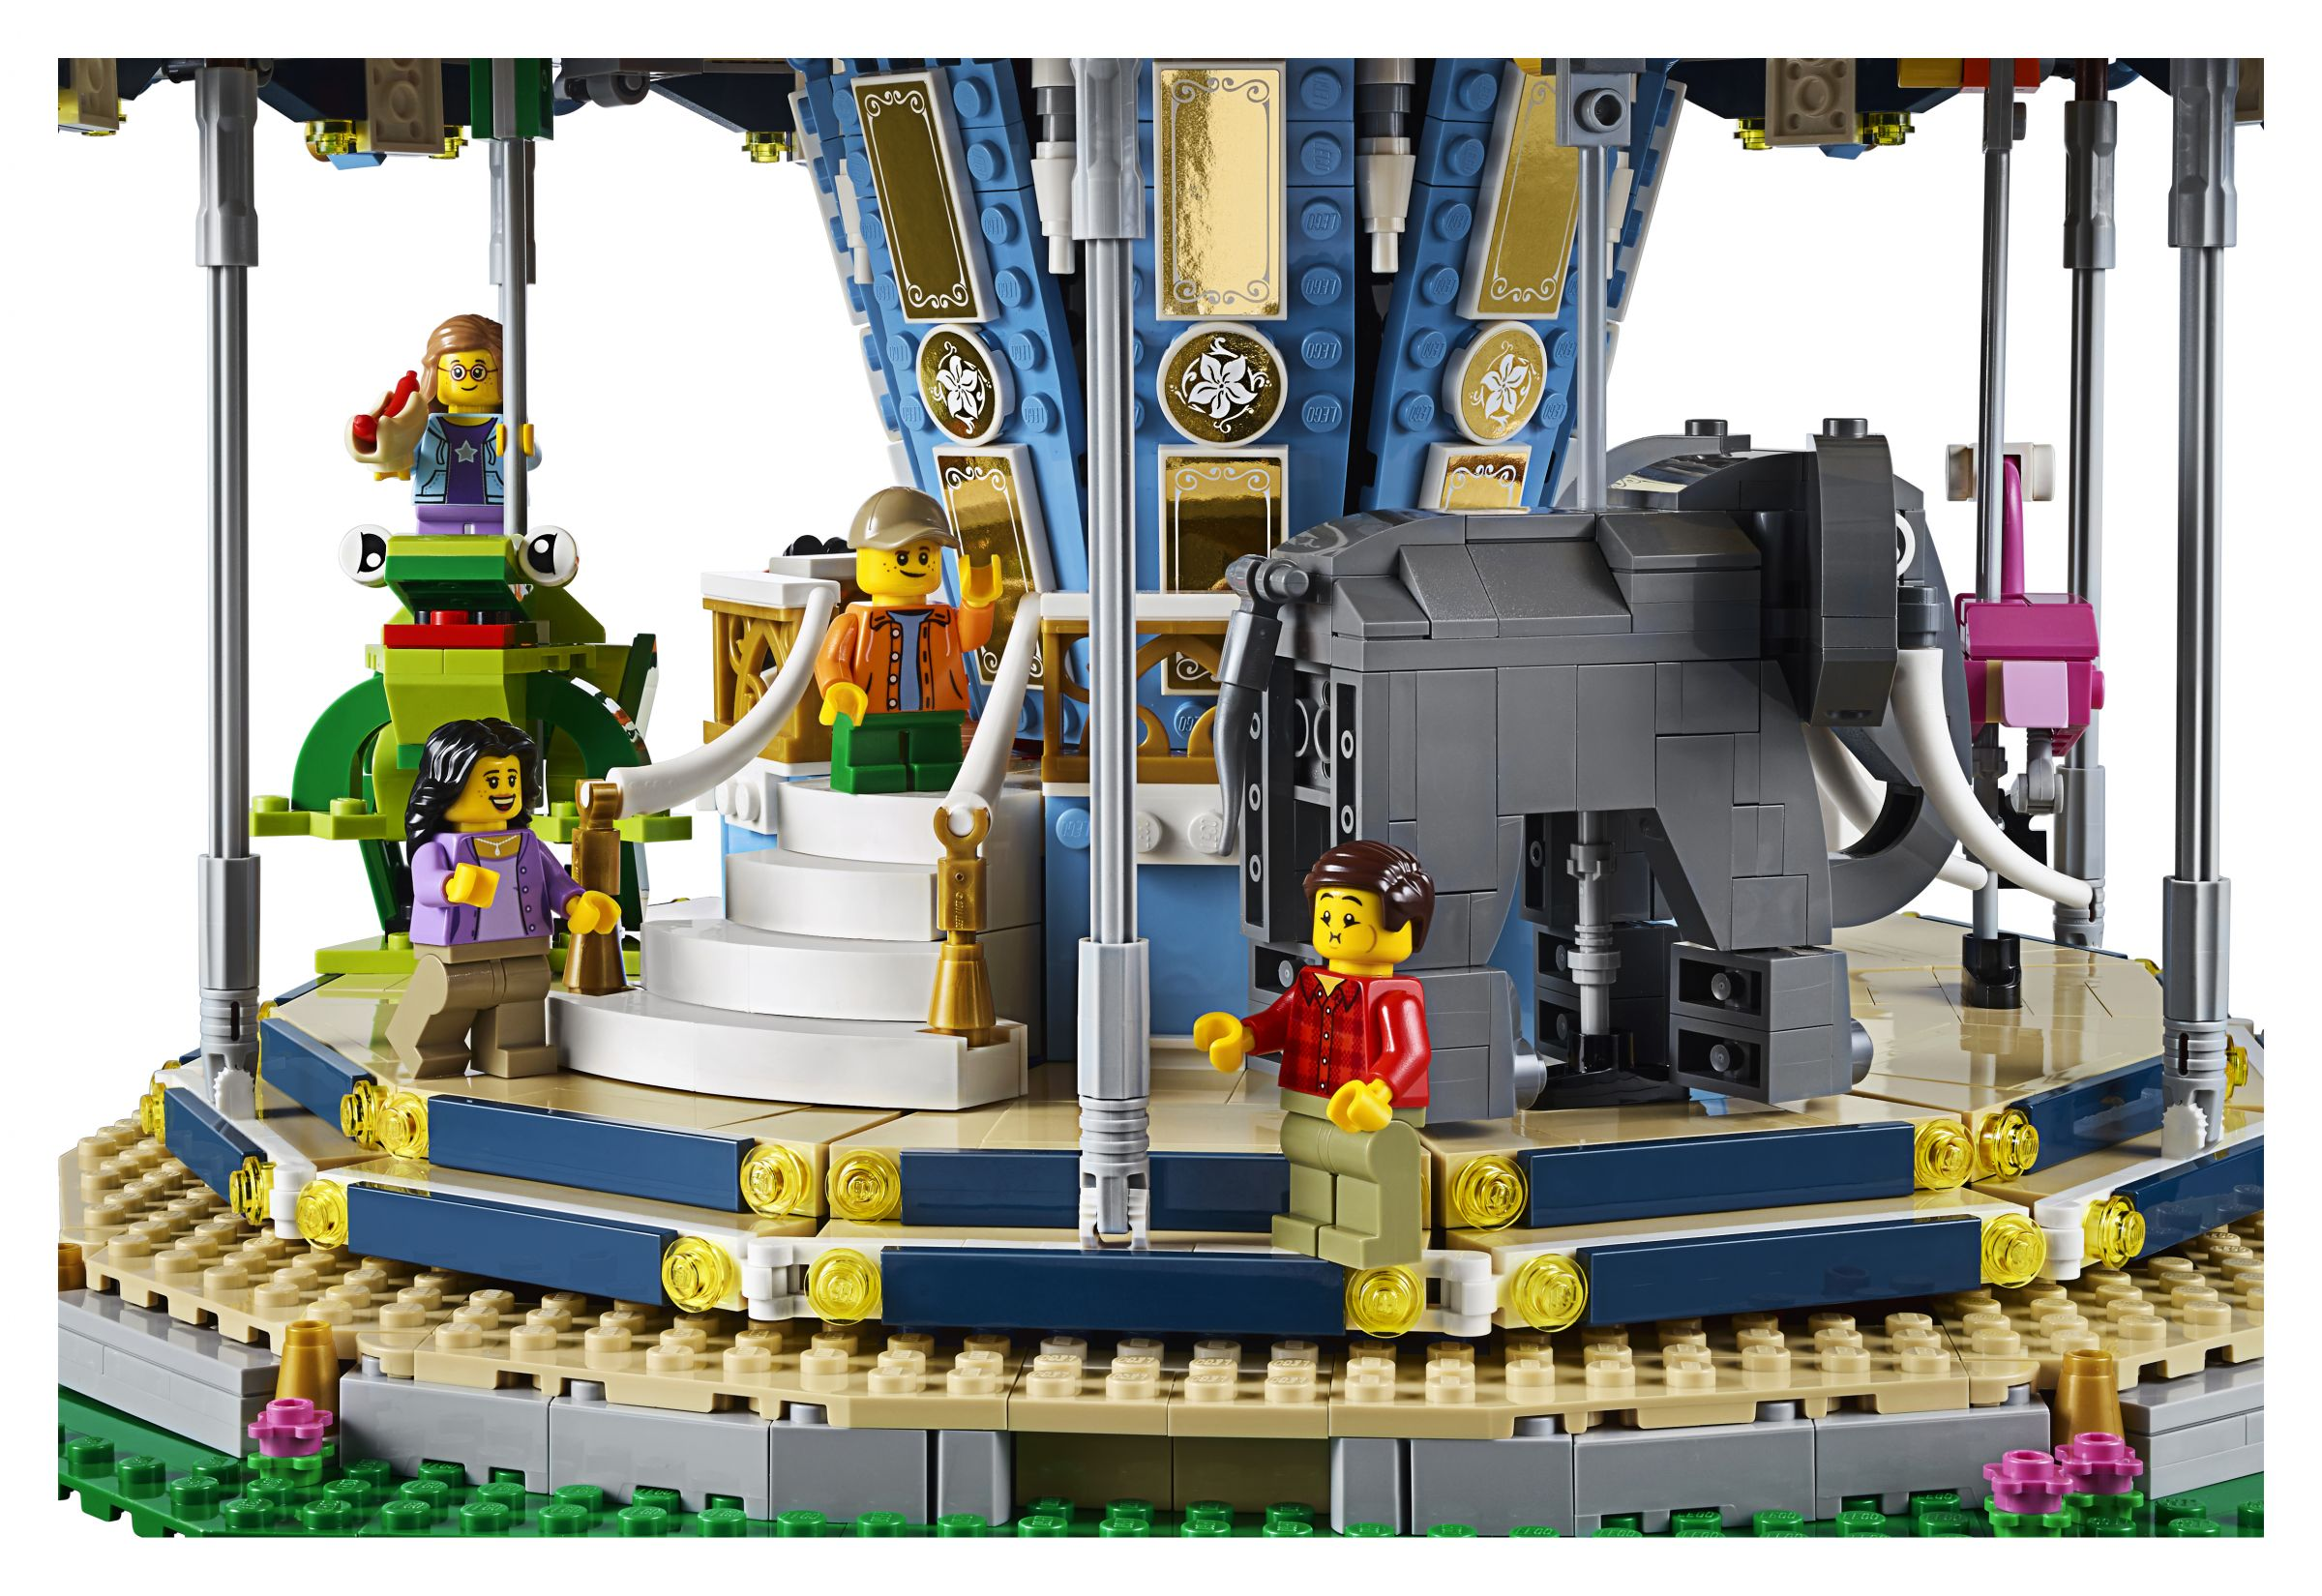 LEGO Advanced Models 10257 Karussell LEGO_10257_Fairground_Carousel_Back_05.jpg